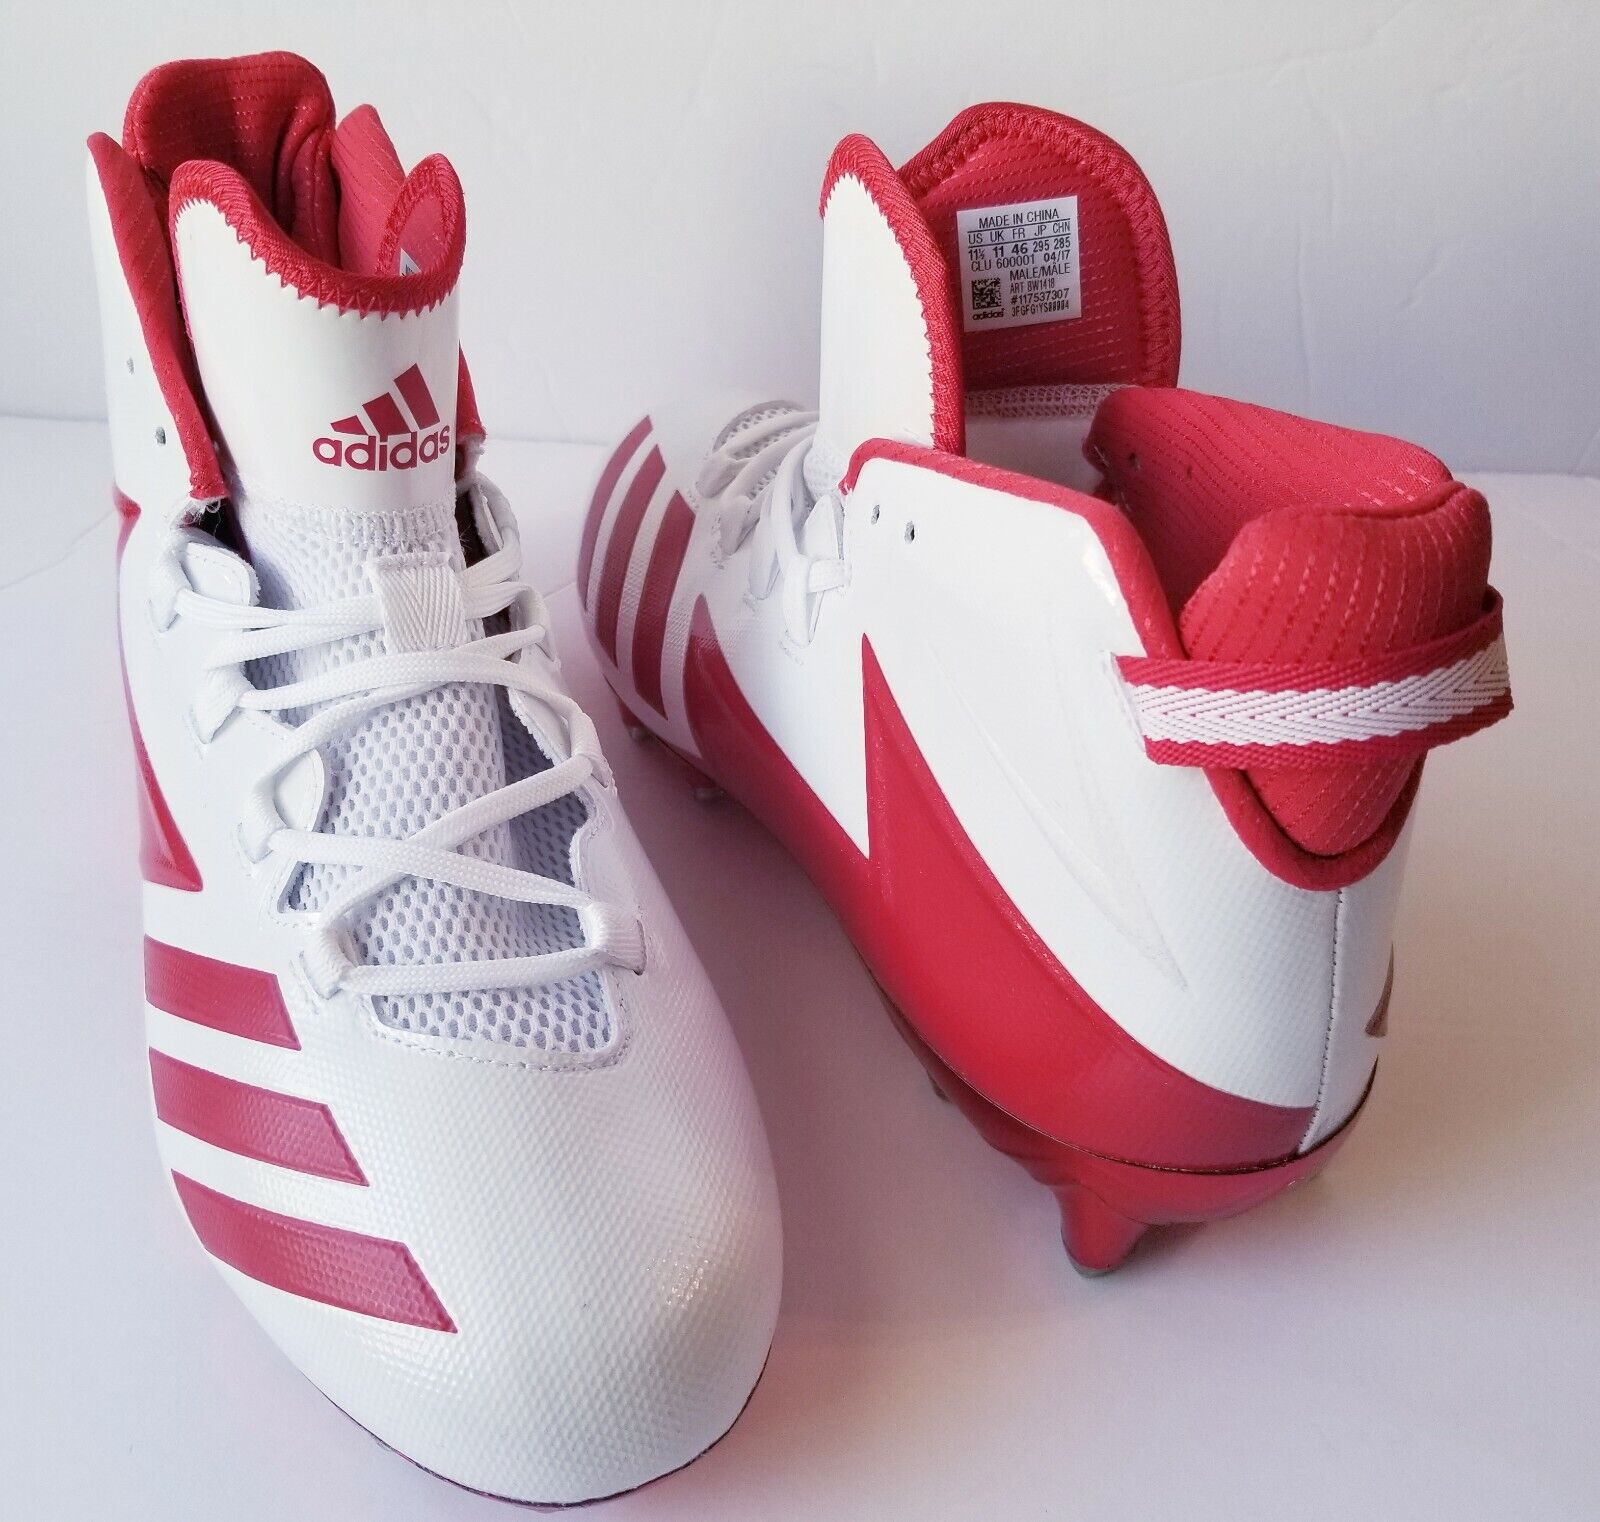 cheap for discount 7e162 bc218 Adidas Men s Freak X Carbon High Cleats shoes BW1418 11.5 White Red sz  Football nwpmwo4245-Men